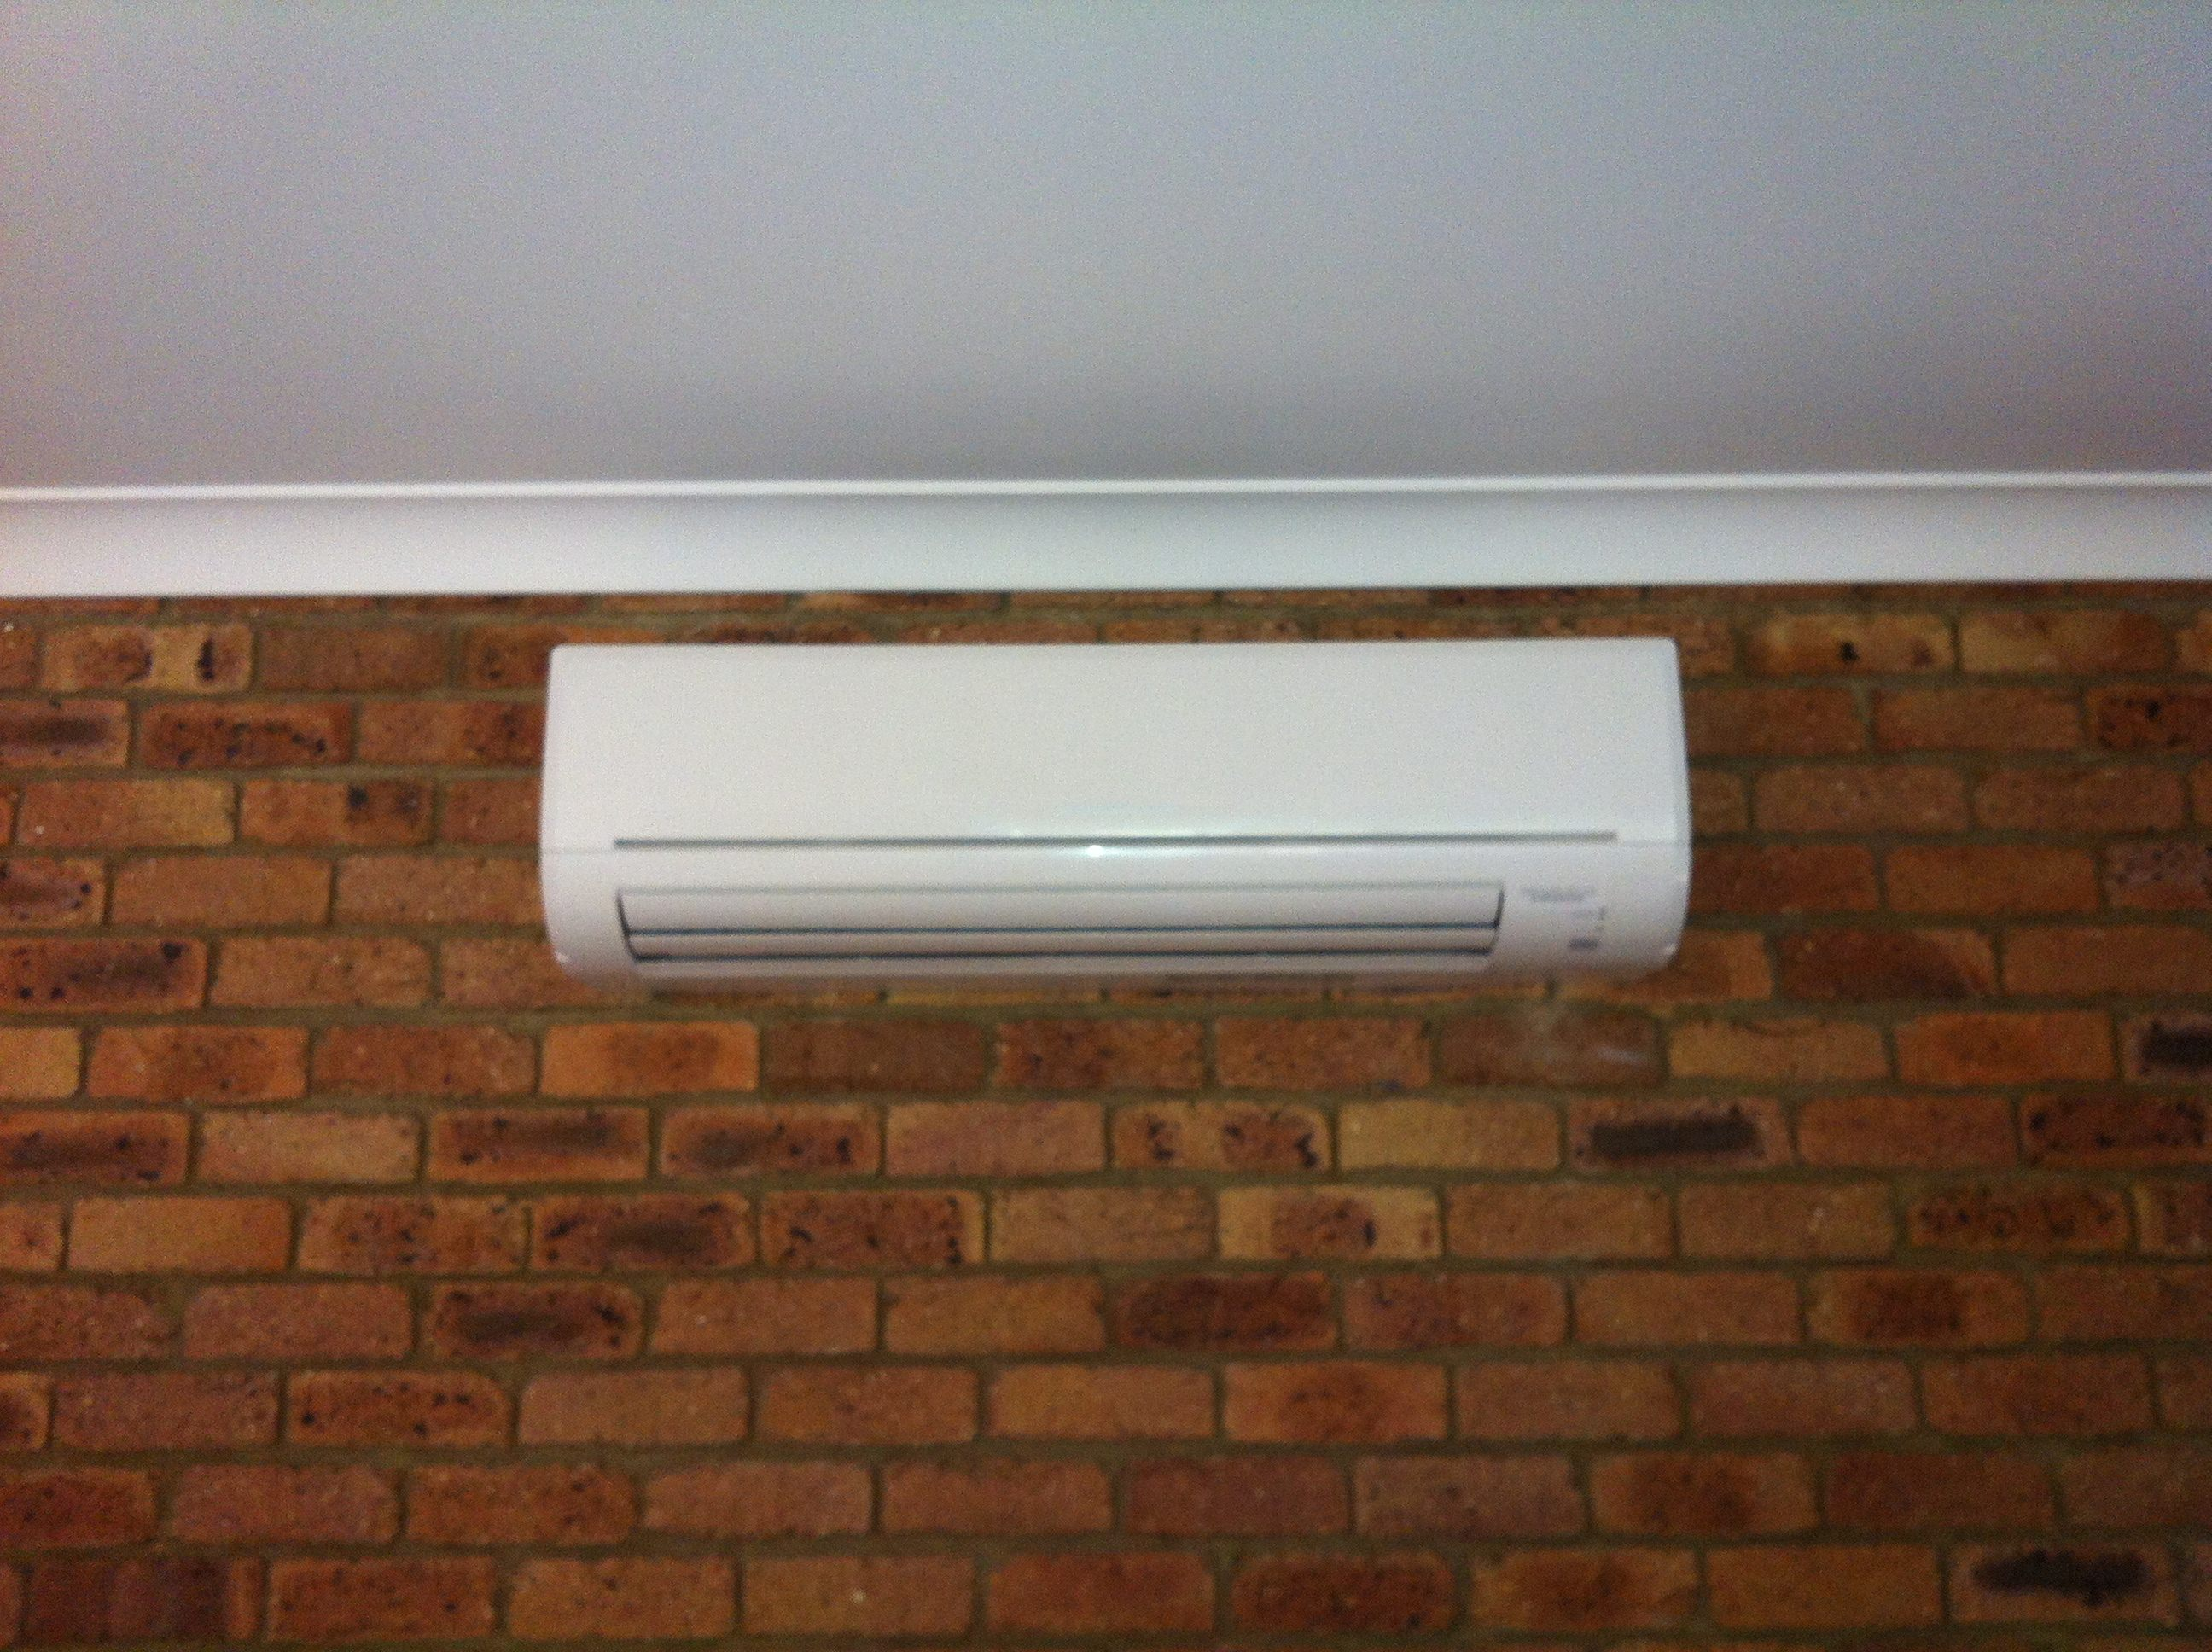 air conditioning options. 1) single split system air conditioning units options